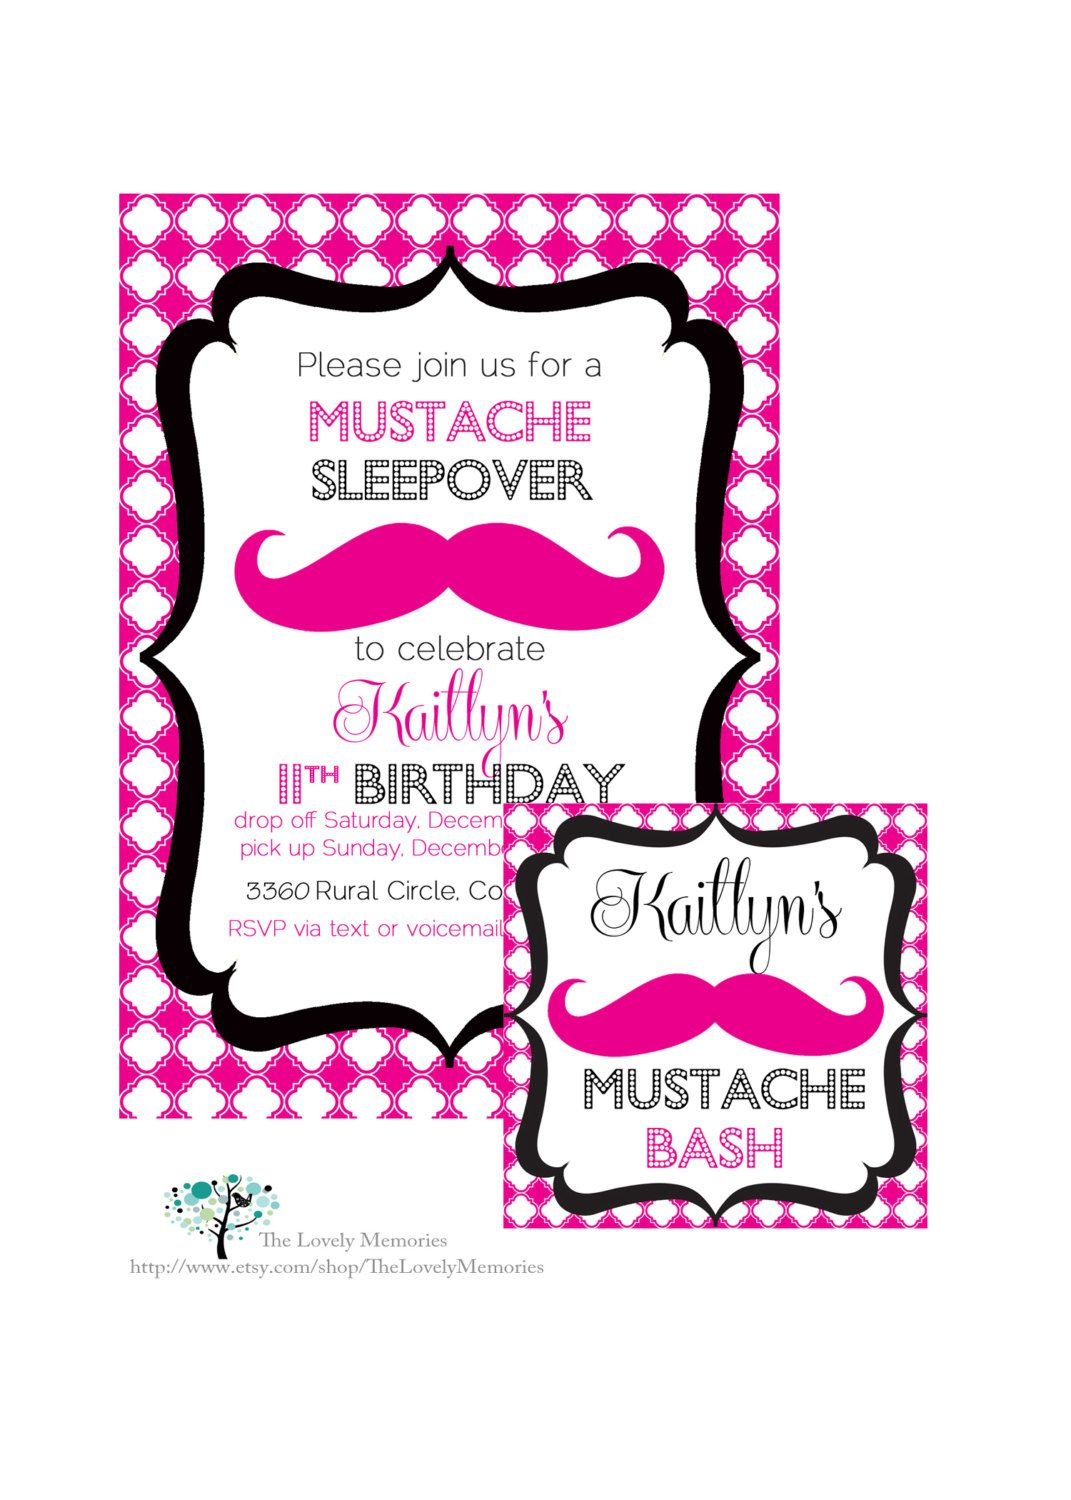 madisyn a blastmustache sleepover birthday bash printable party invitation favor tags - Mustache Party Invitations